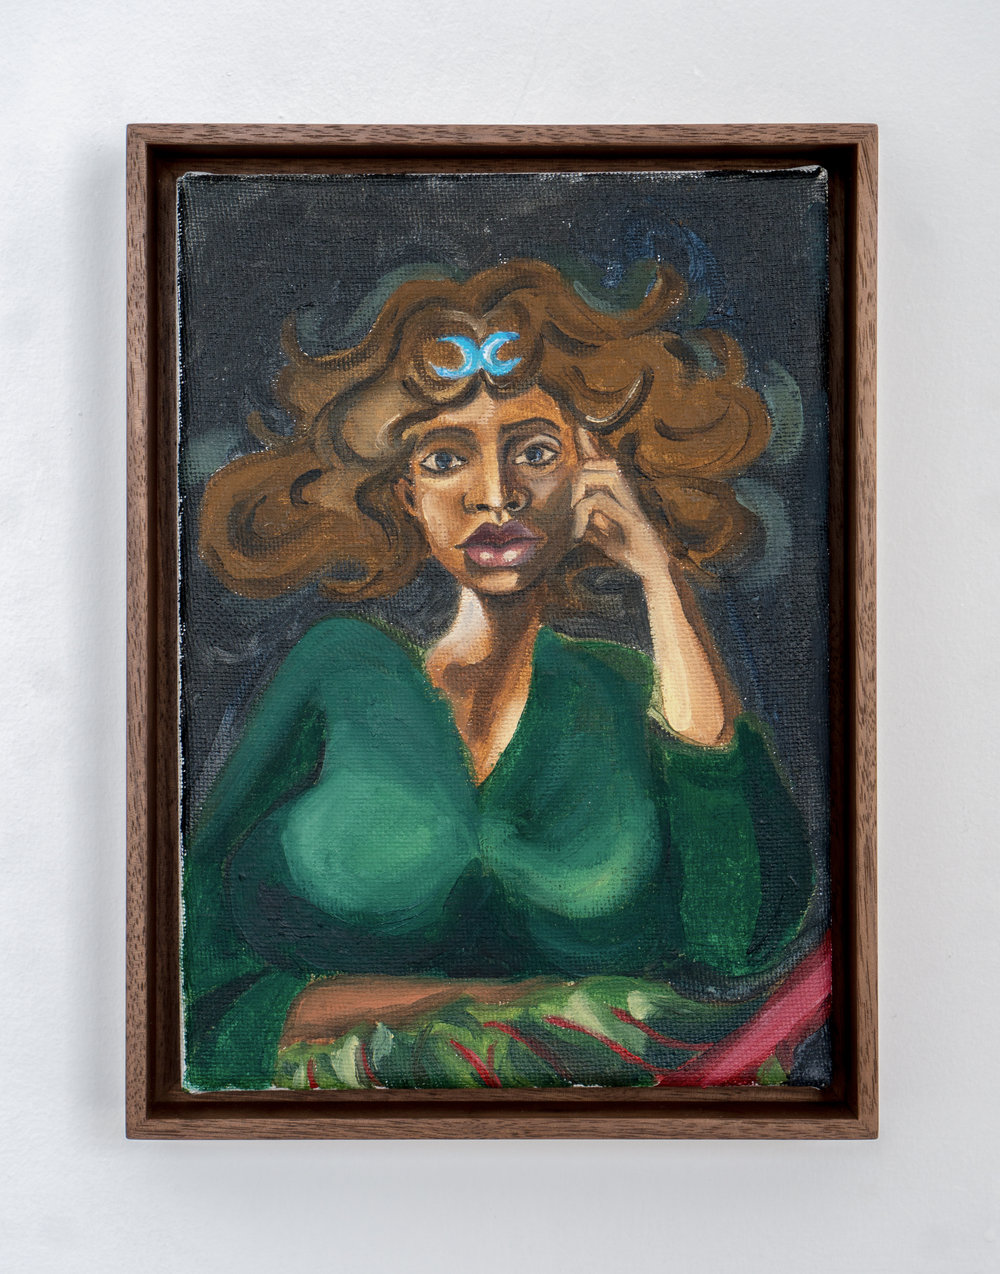 Etruscan Miniature , 2018, Oil on canvas, 9 x 6.7 inches